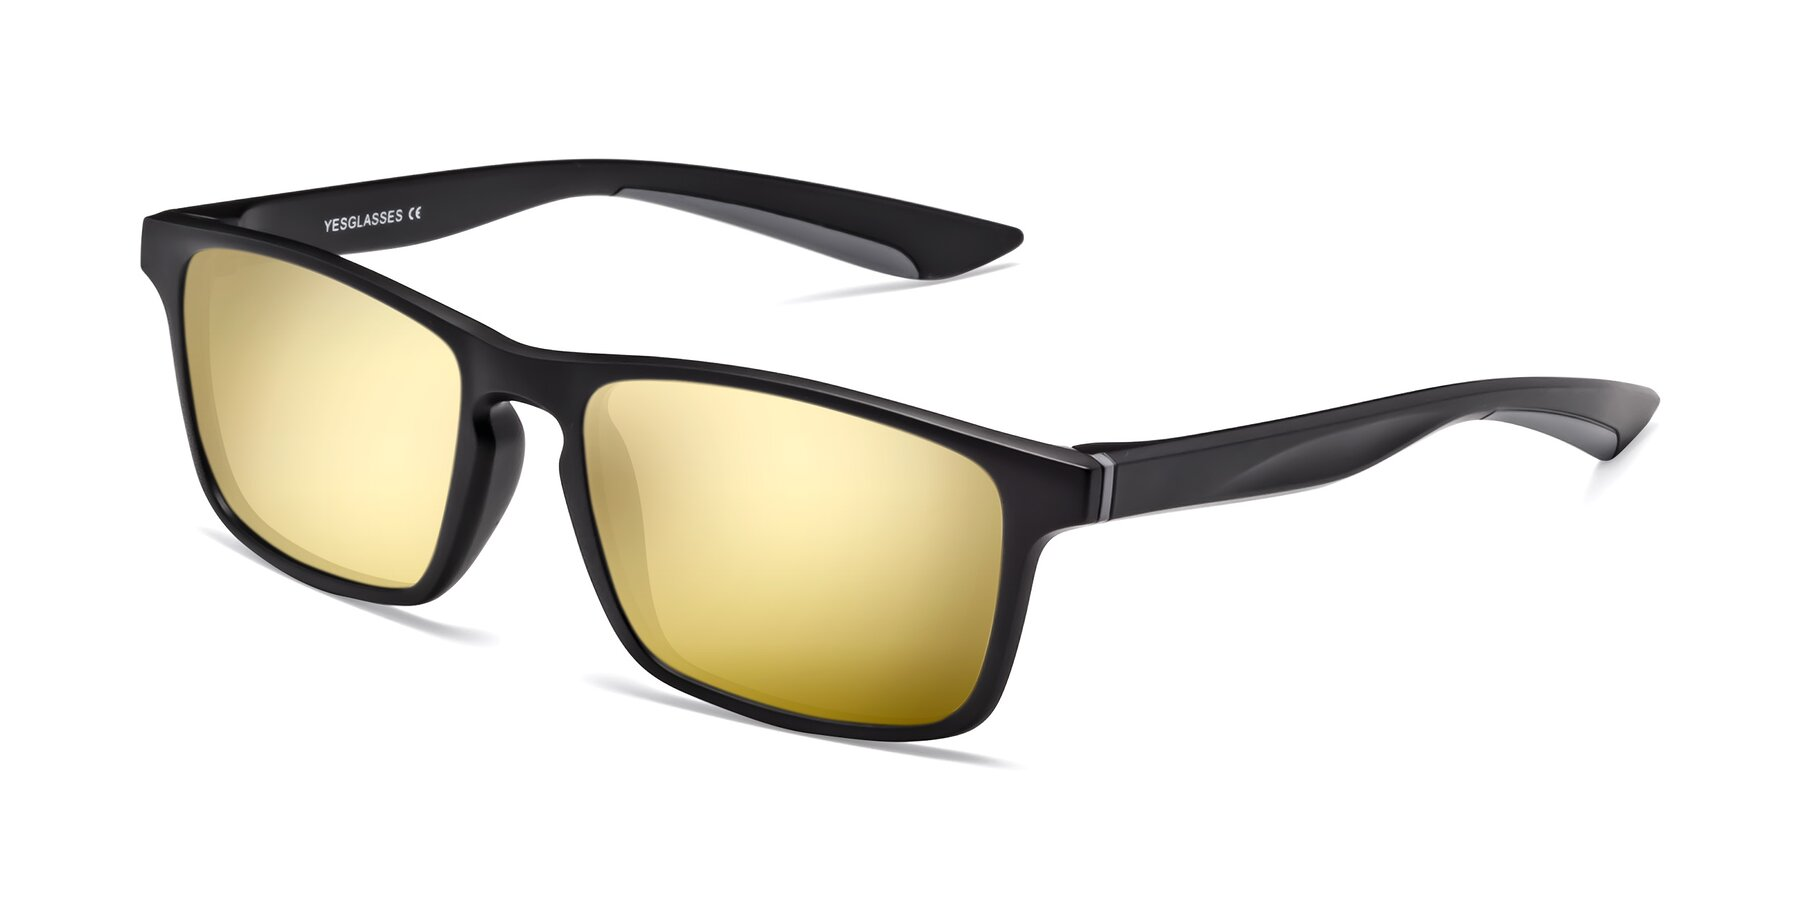 Angle of Passion in Matte Black-Gray with Gold Mirrored Lenses